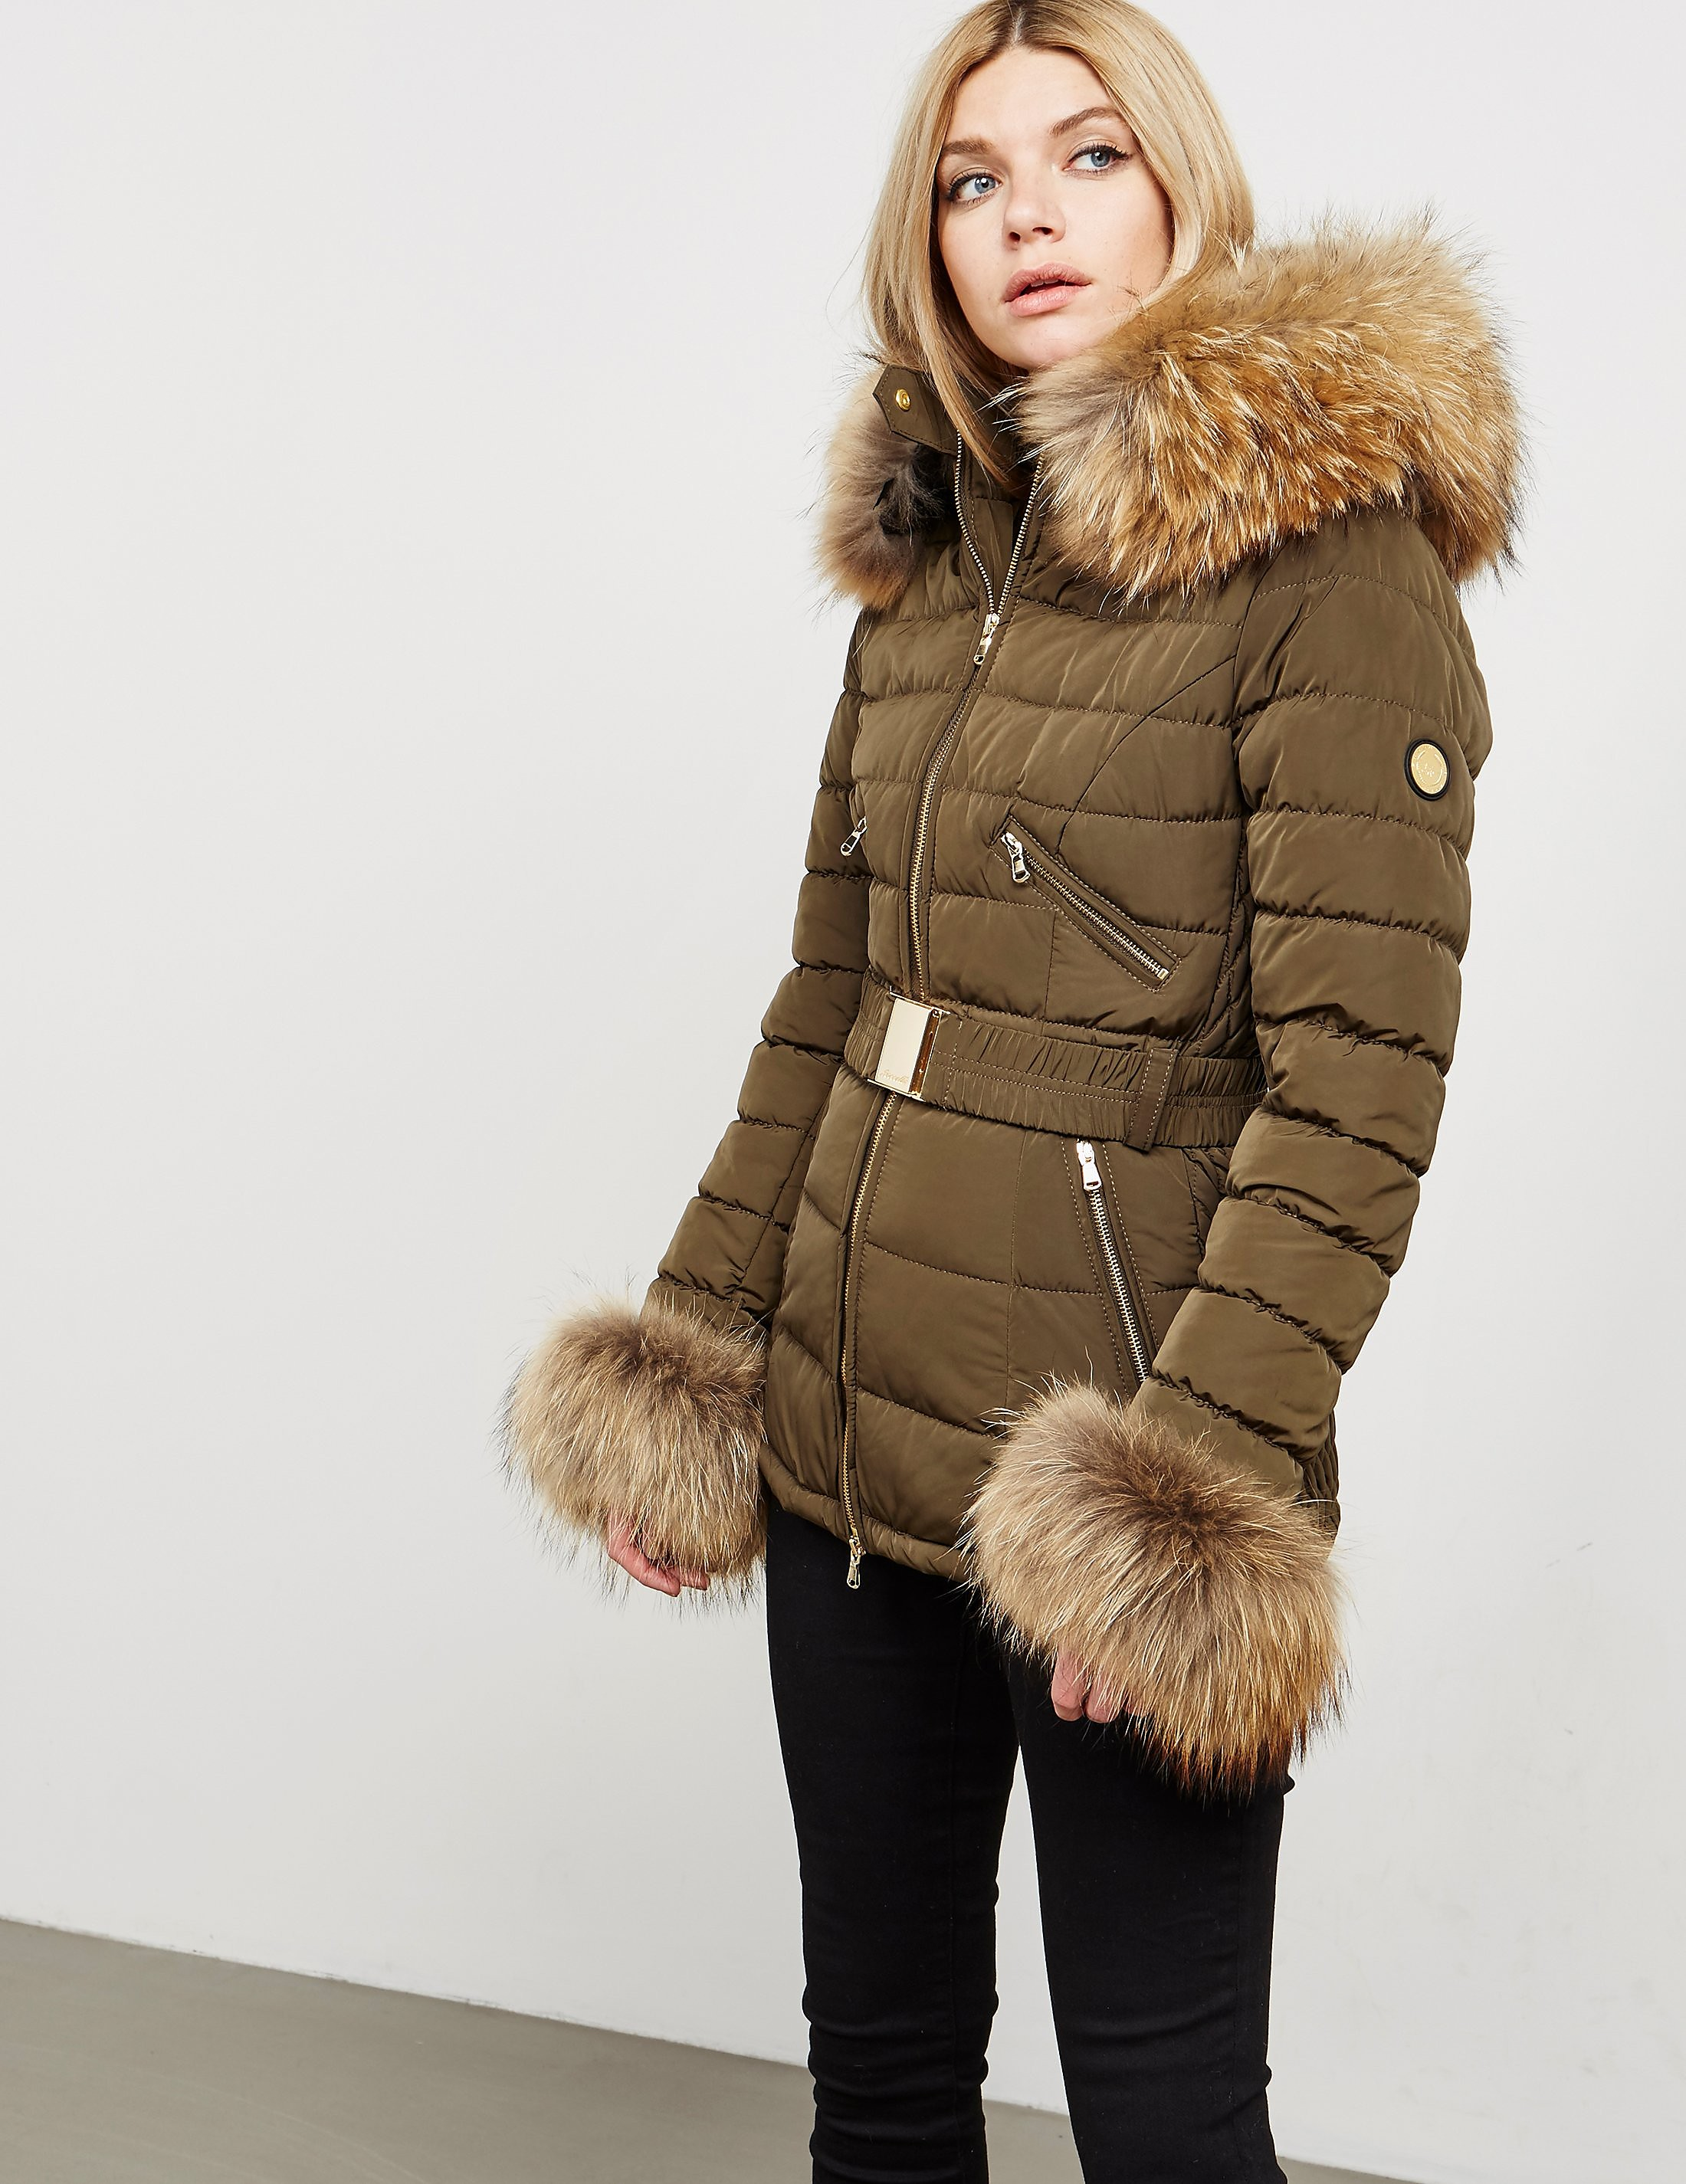 Froccella Padded Fur Jacket